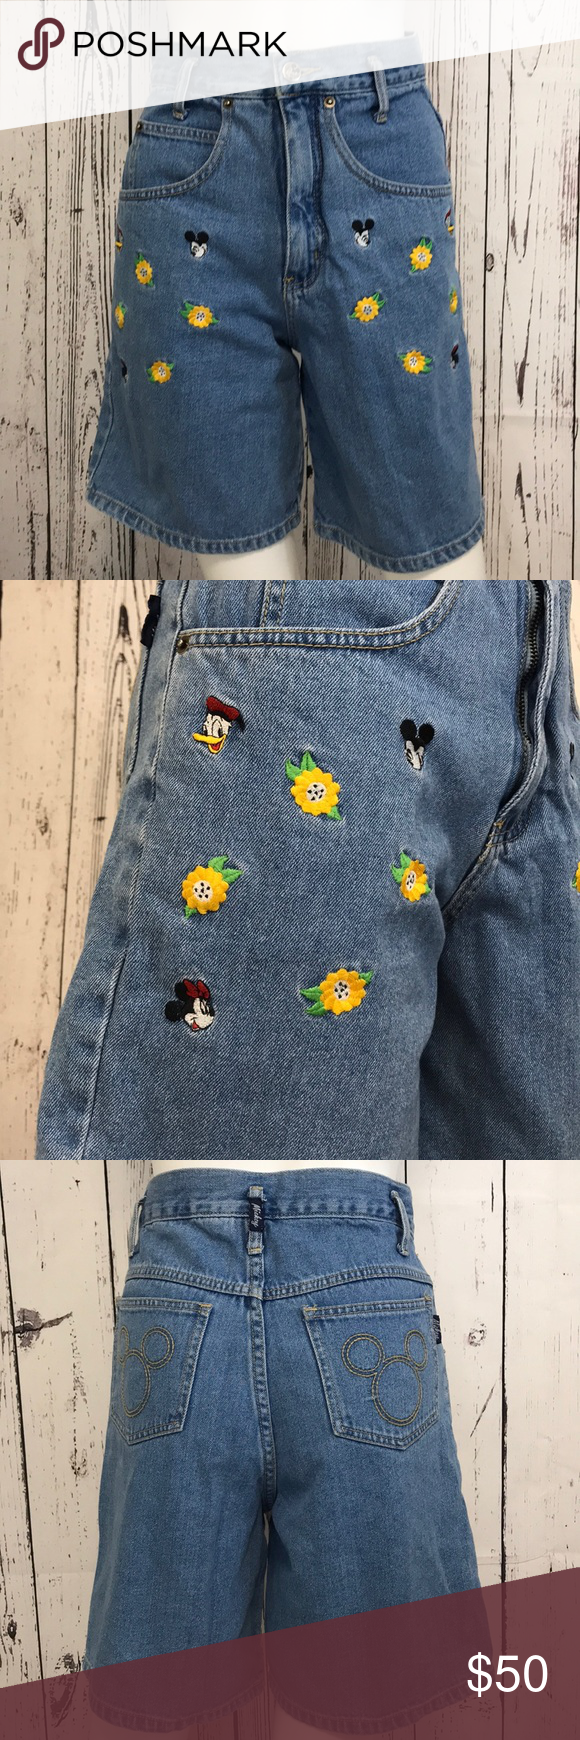 Vintage 90s Disney MICKEY MOUSE JEANS embroidered Denim Rare bnQ5mgDg